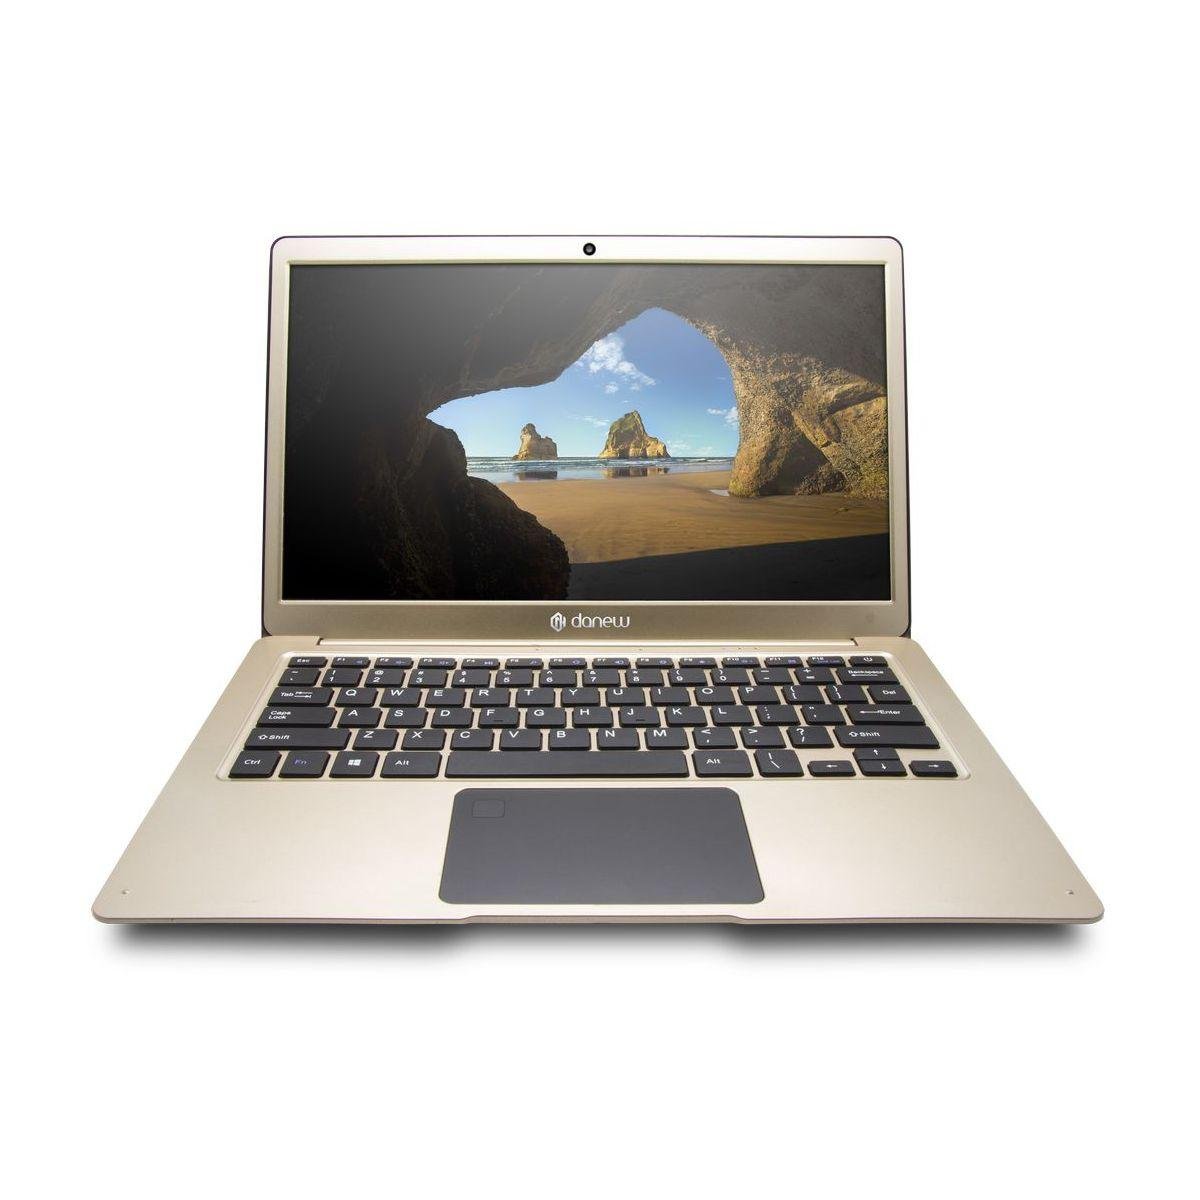 Portable danew dbook 130 - gold (photo)